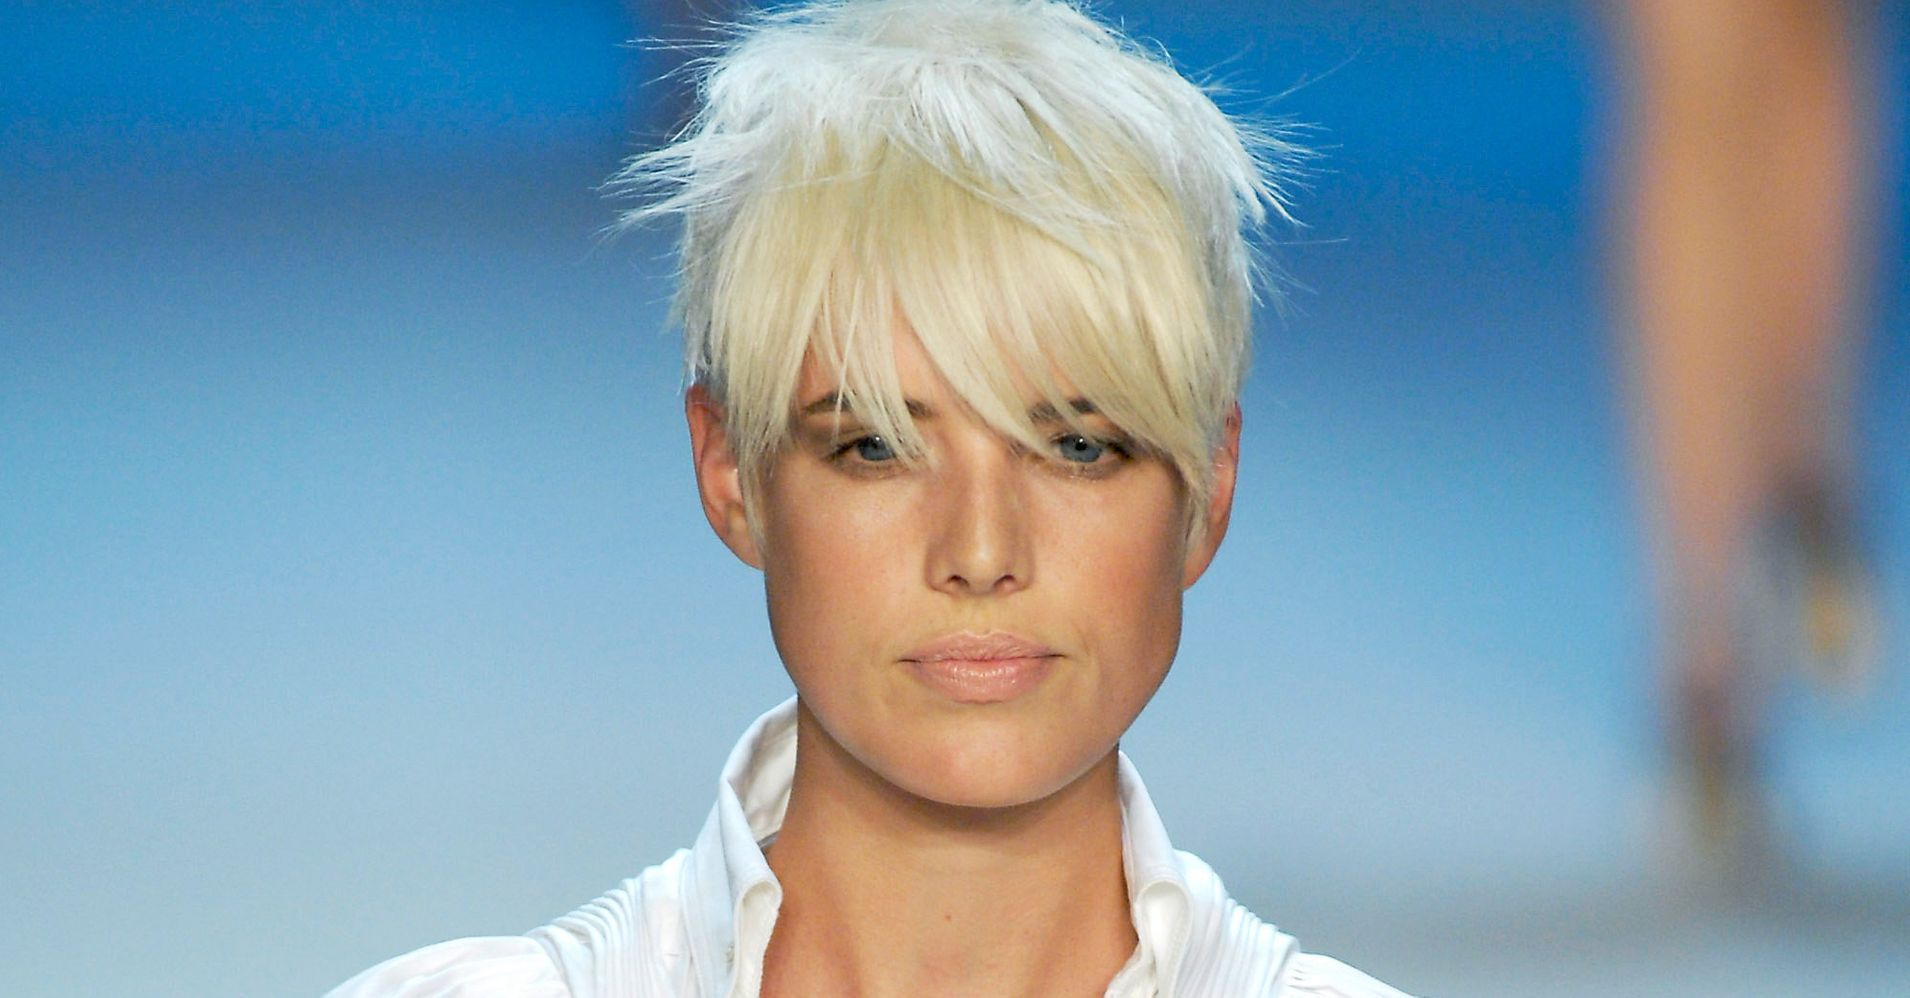 15 Photos That Will Make You Reconsider A Bowl Haircut Really